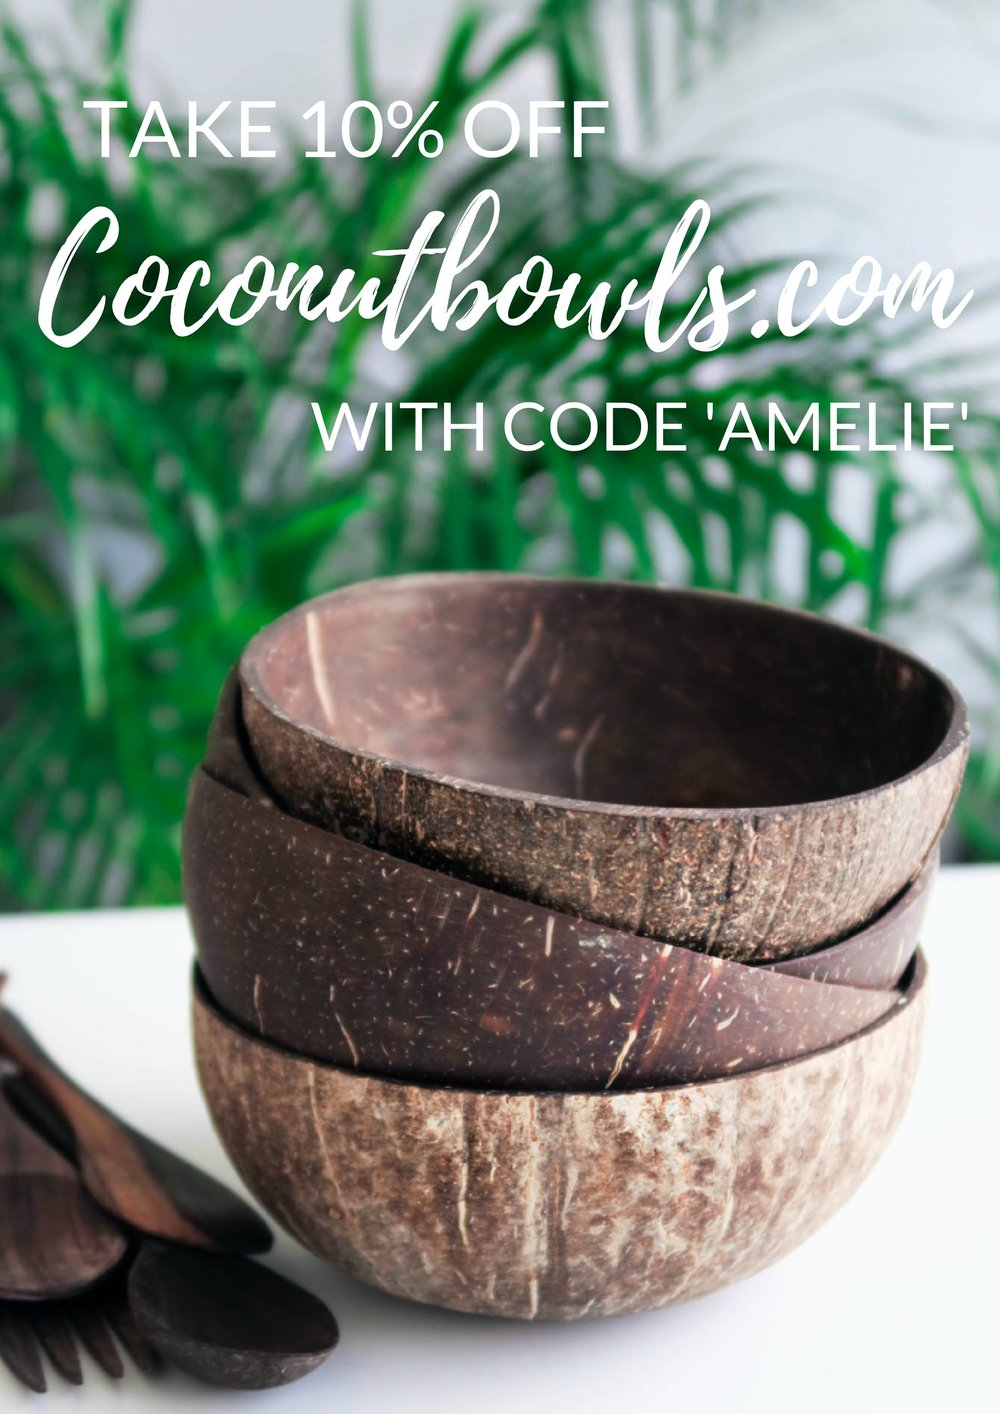 Coconutbowls coupon code AMELIE